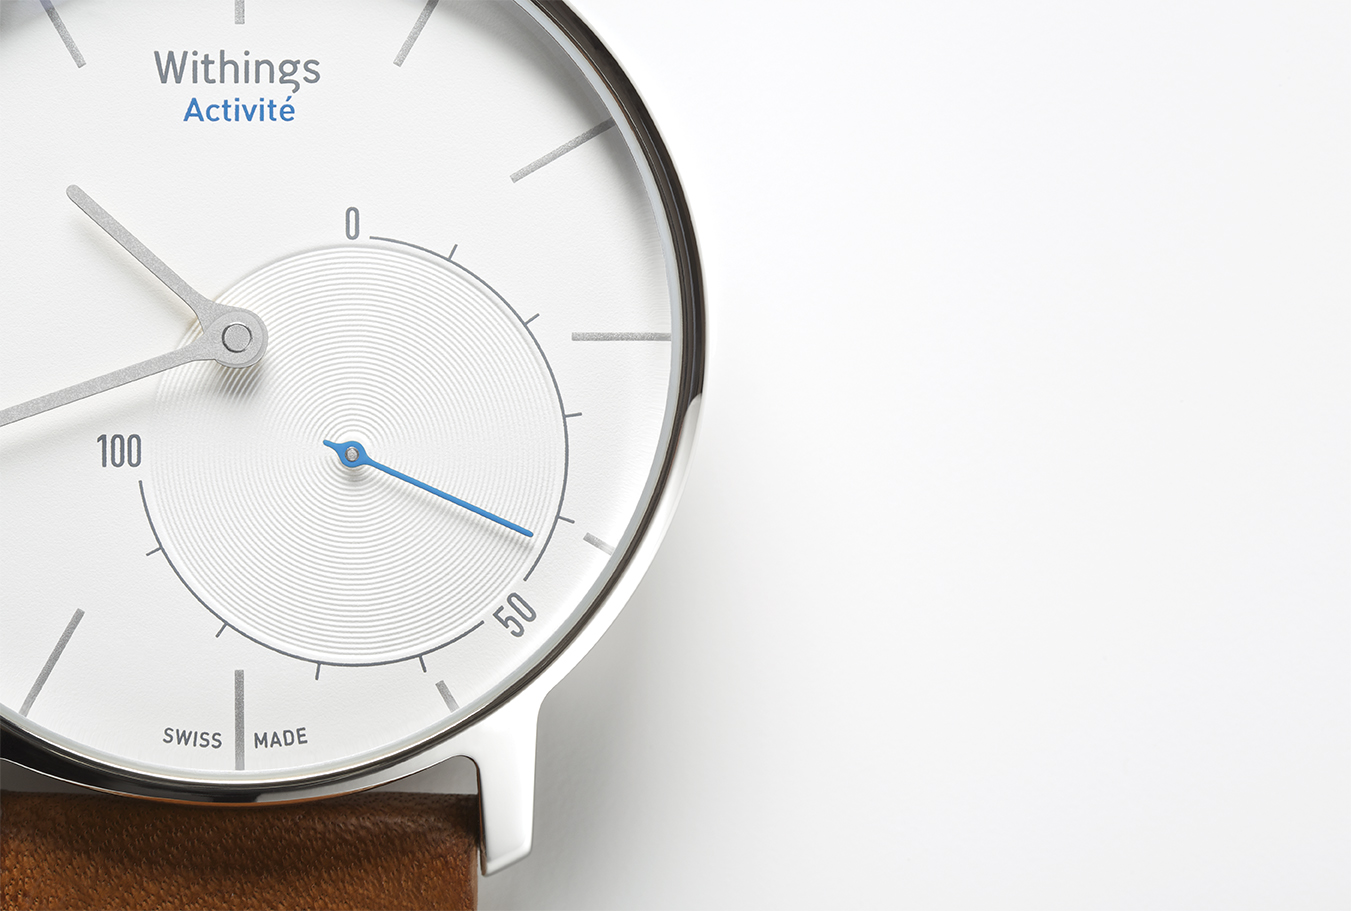 1.Withings_Activité_flagship_close-up